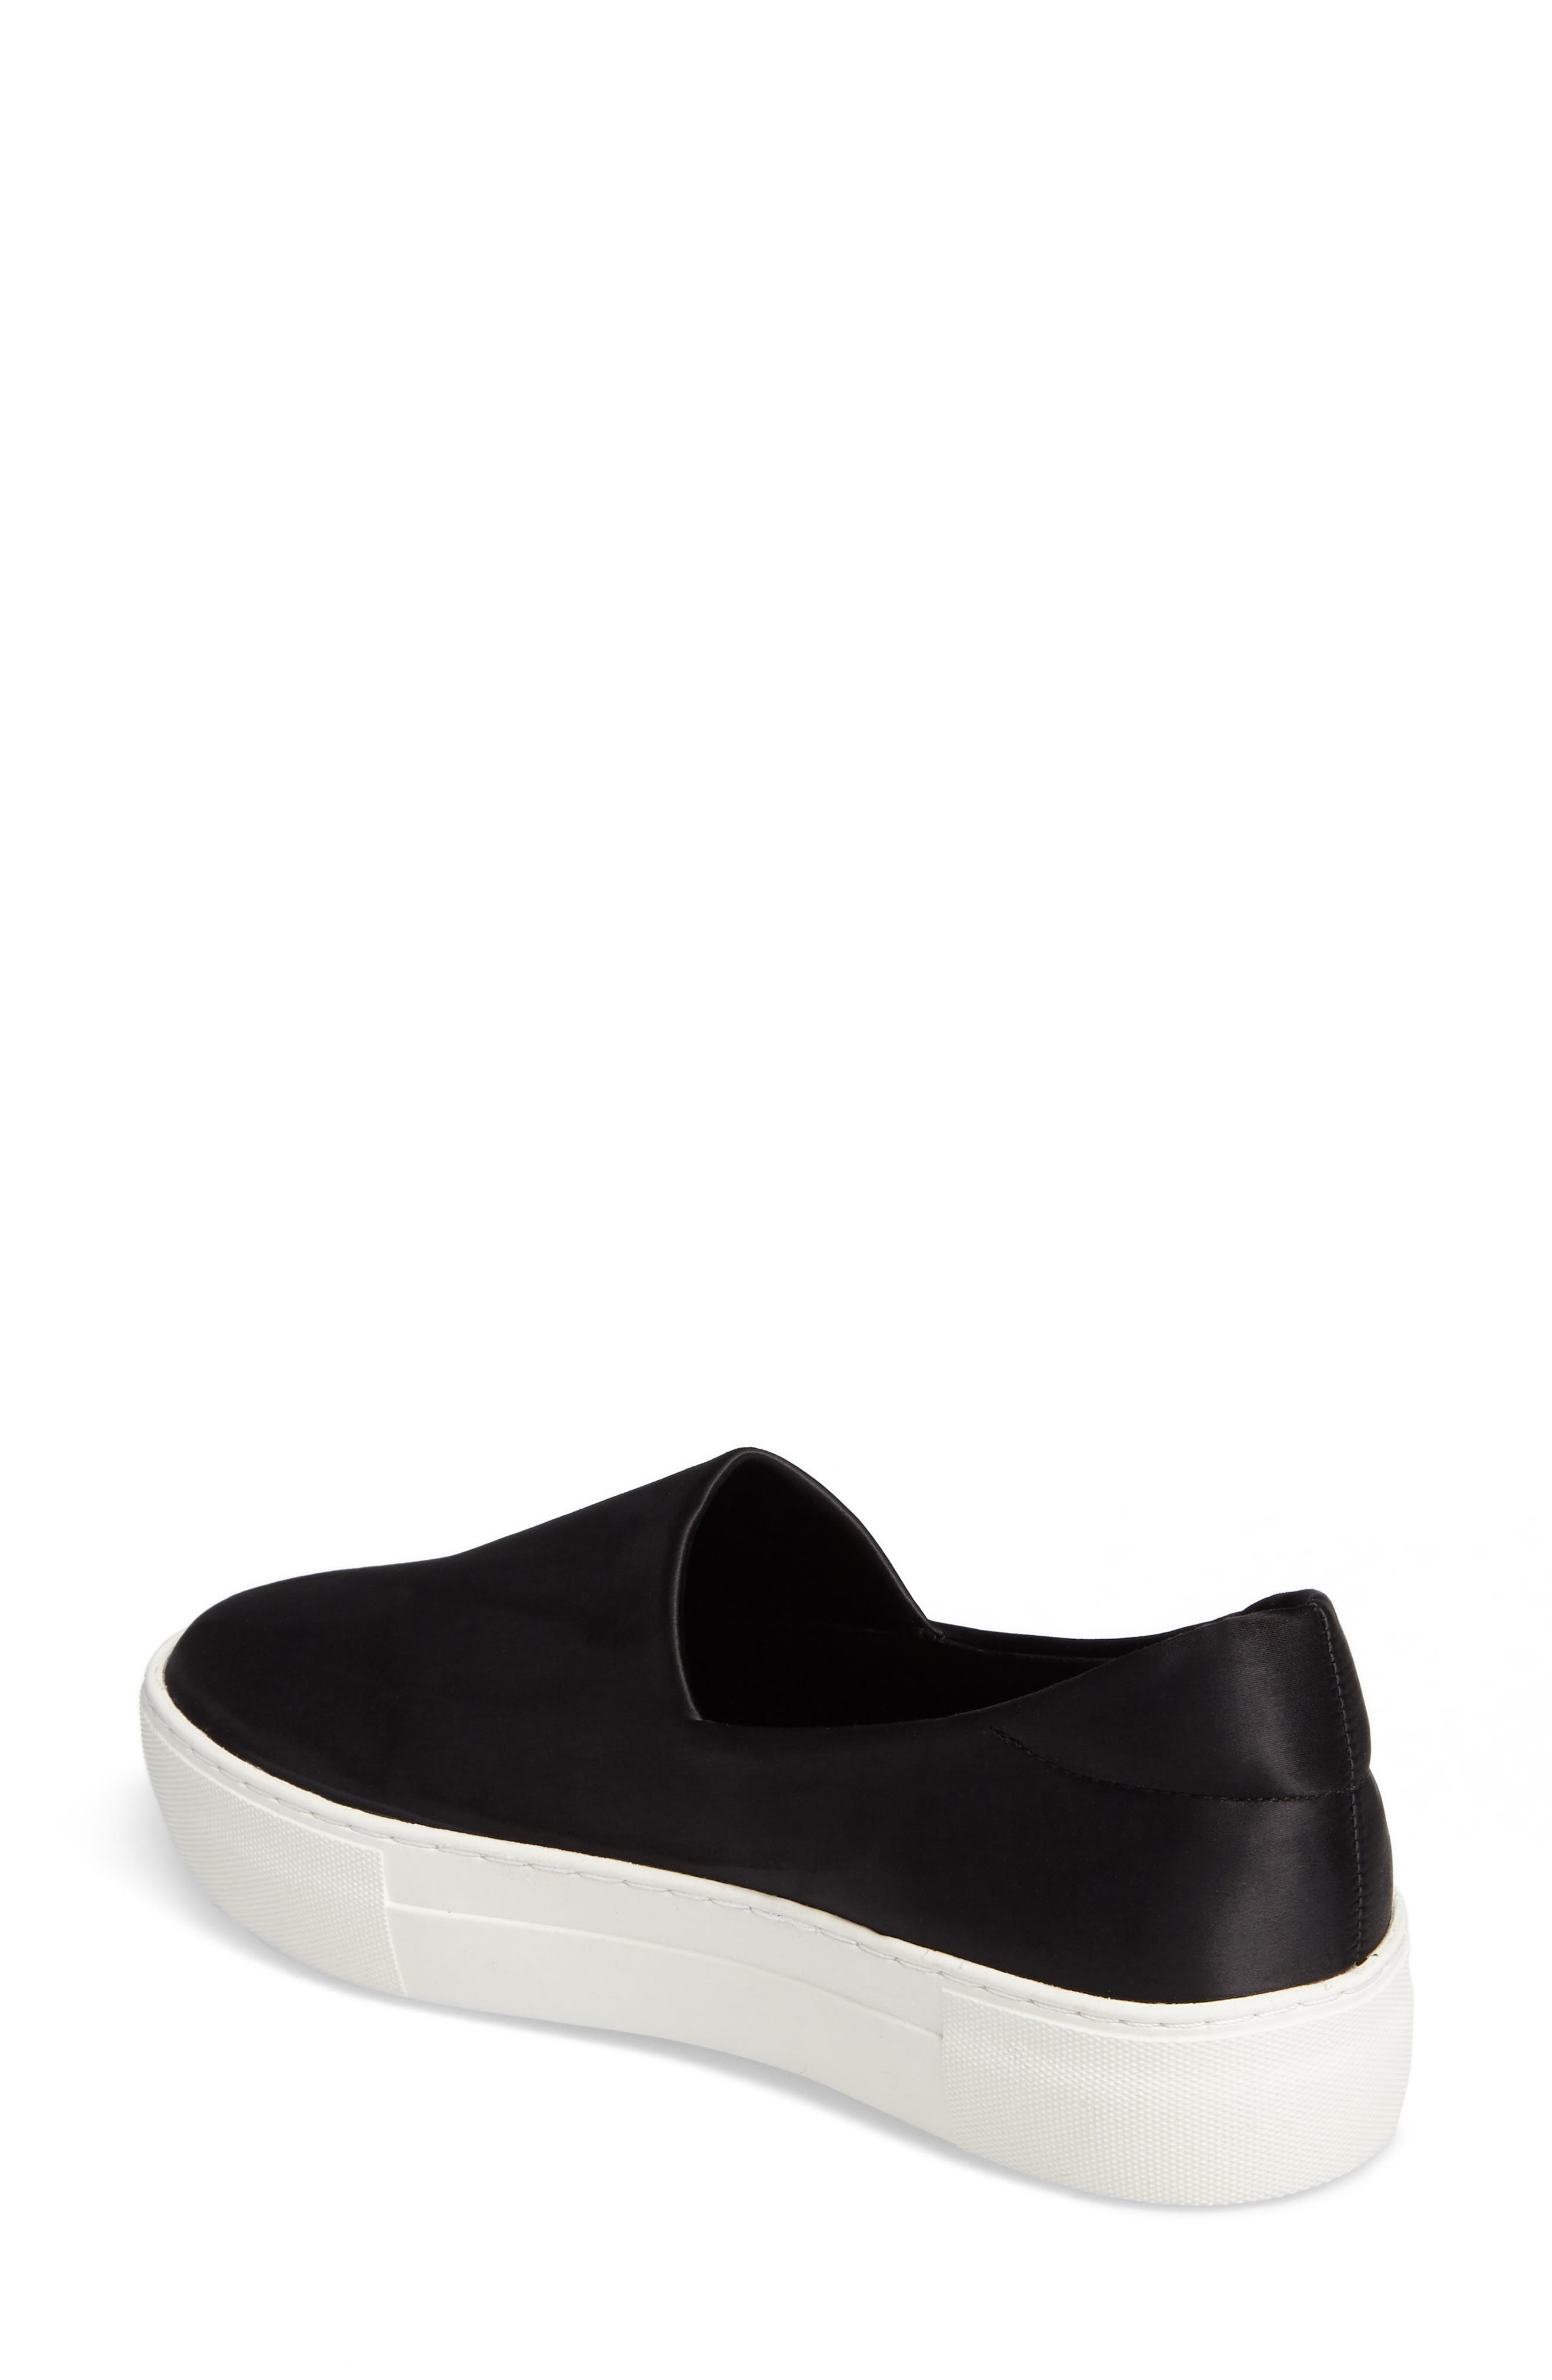 Abba Slip-On Platform Sneaker,                             Alternate thumbnail 2, color,                             001